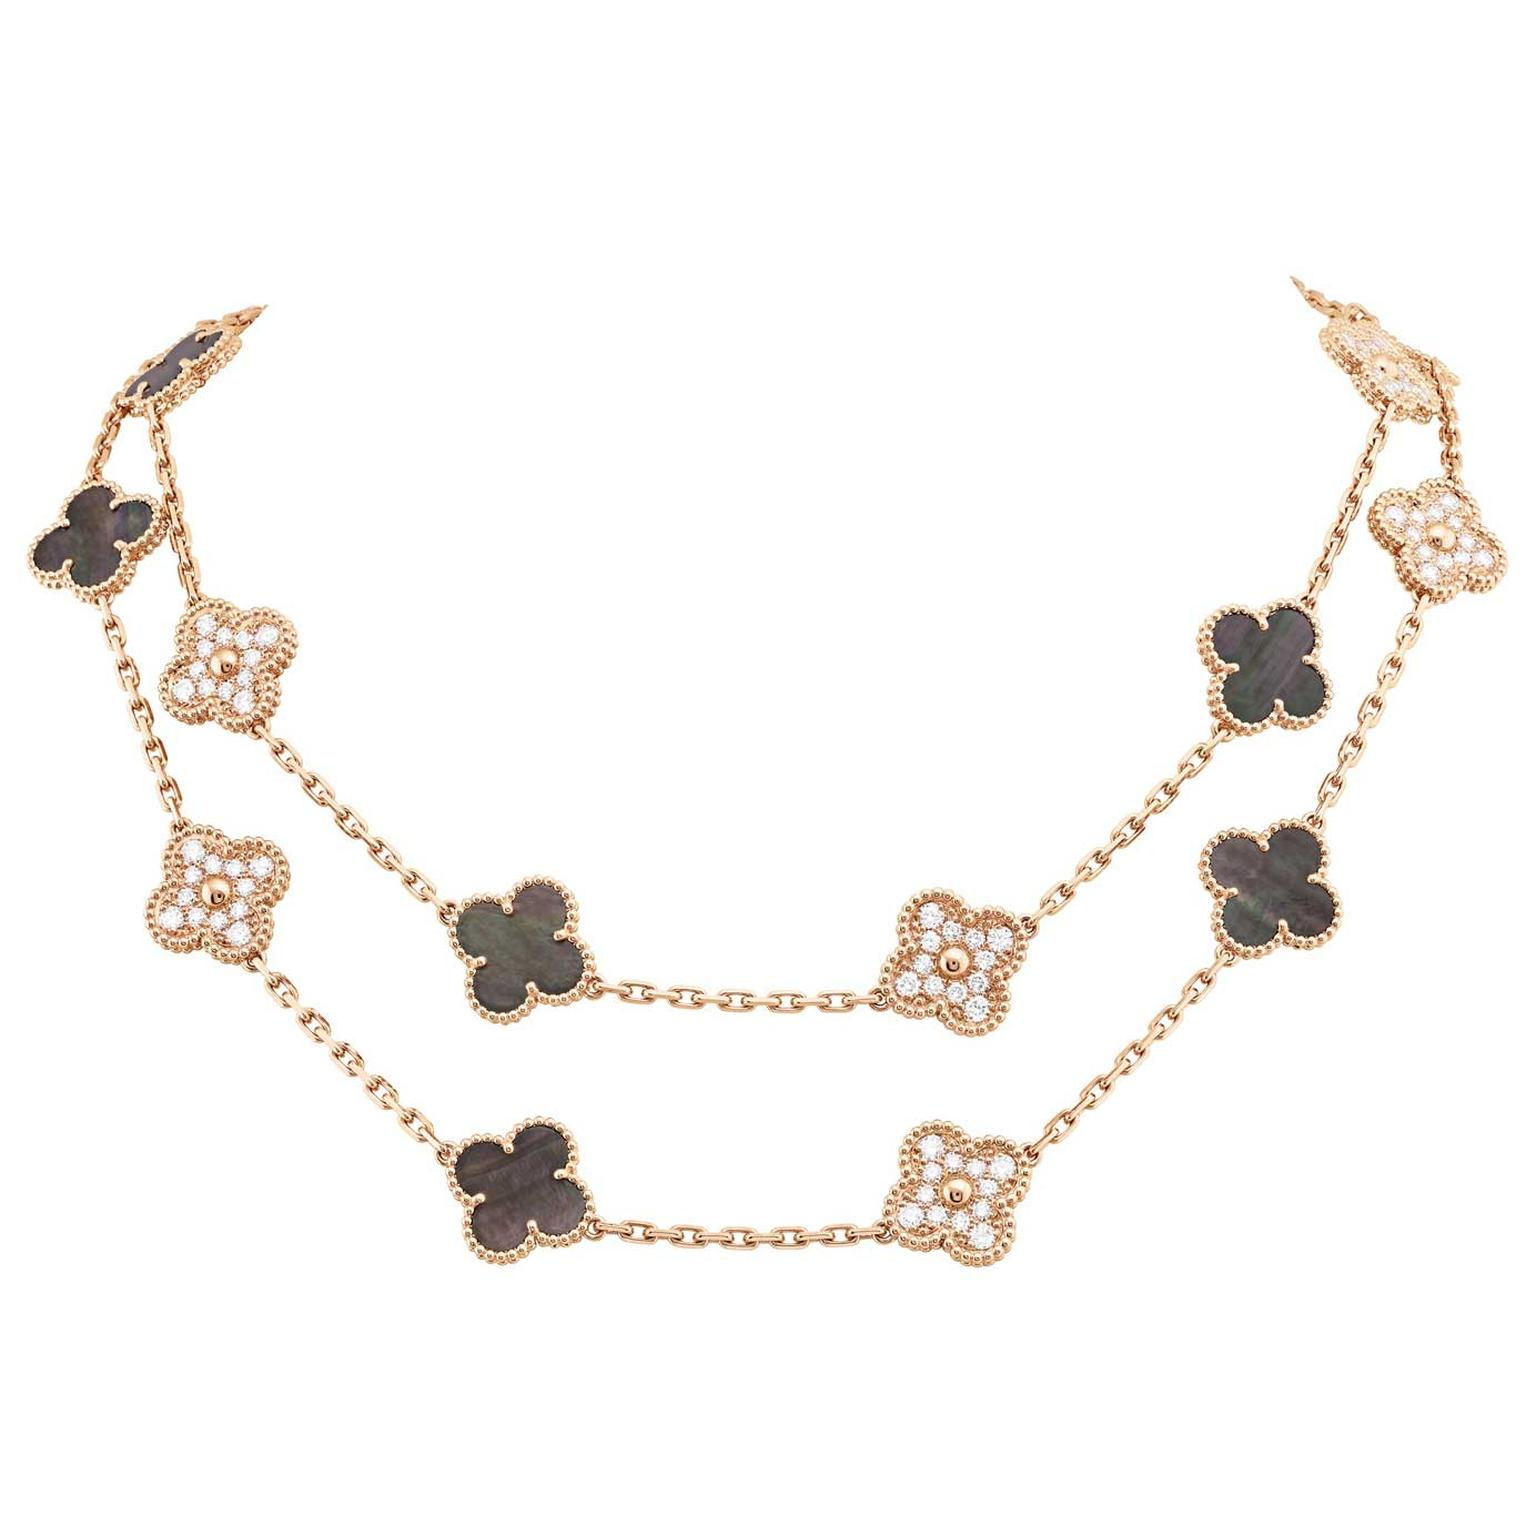 Van Cleef Arpels 50th anniversary Vintage Alhambra necklace in grey mother of pearl